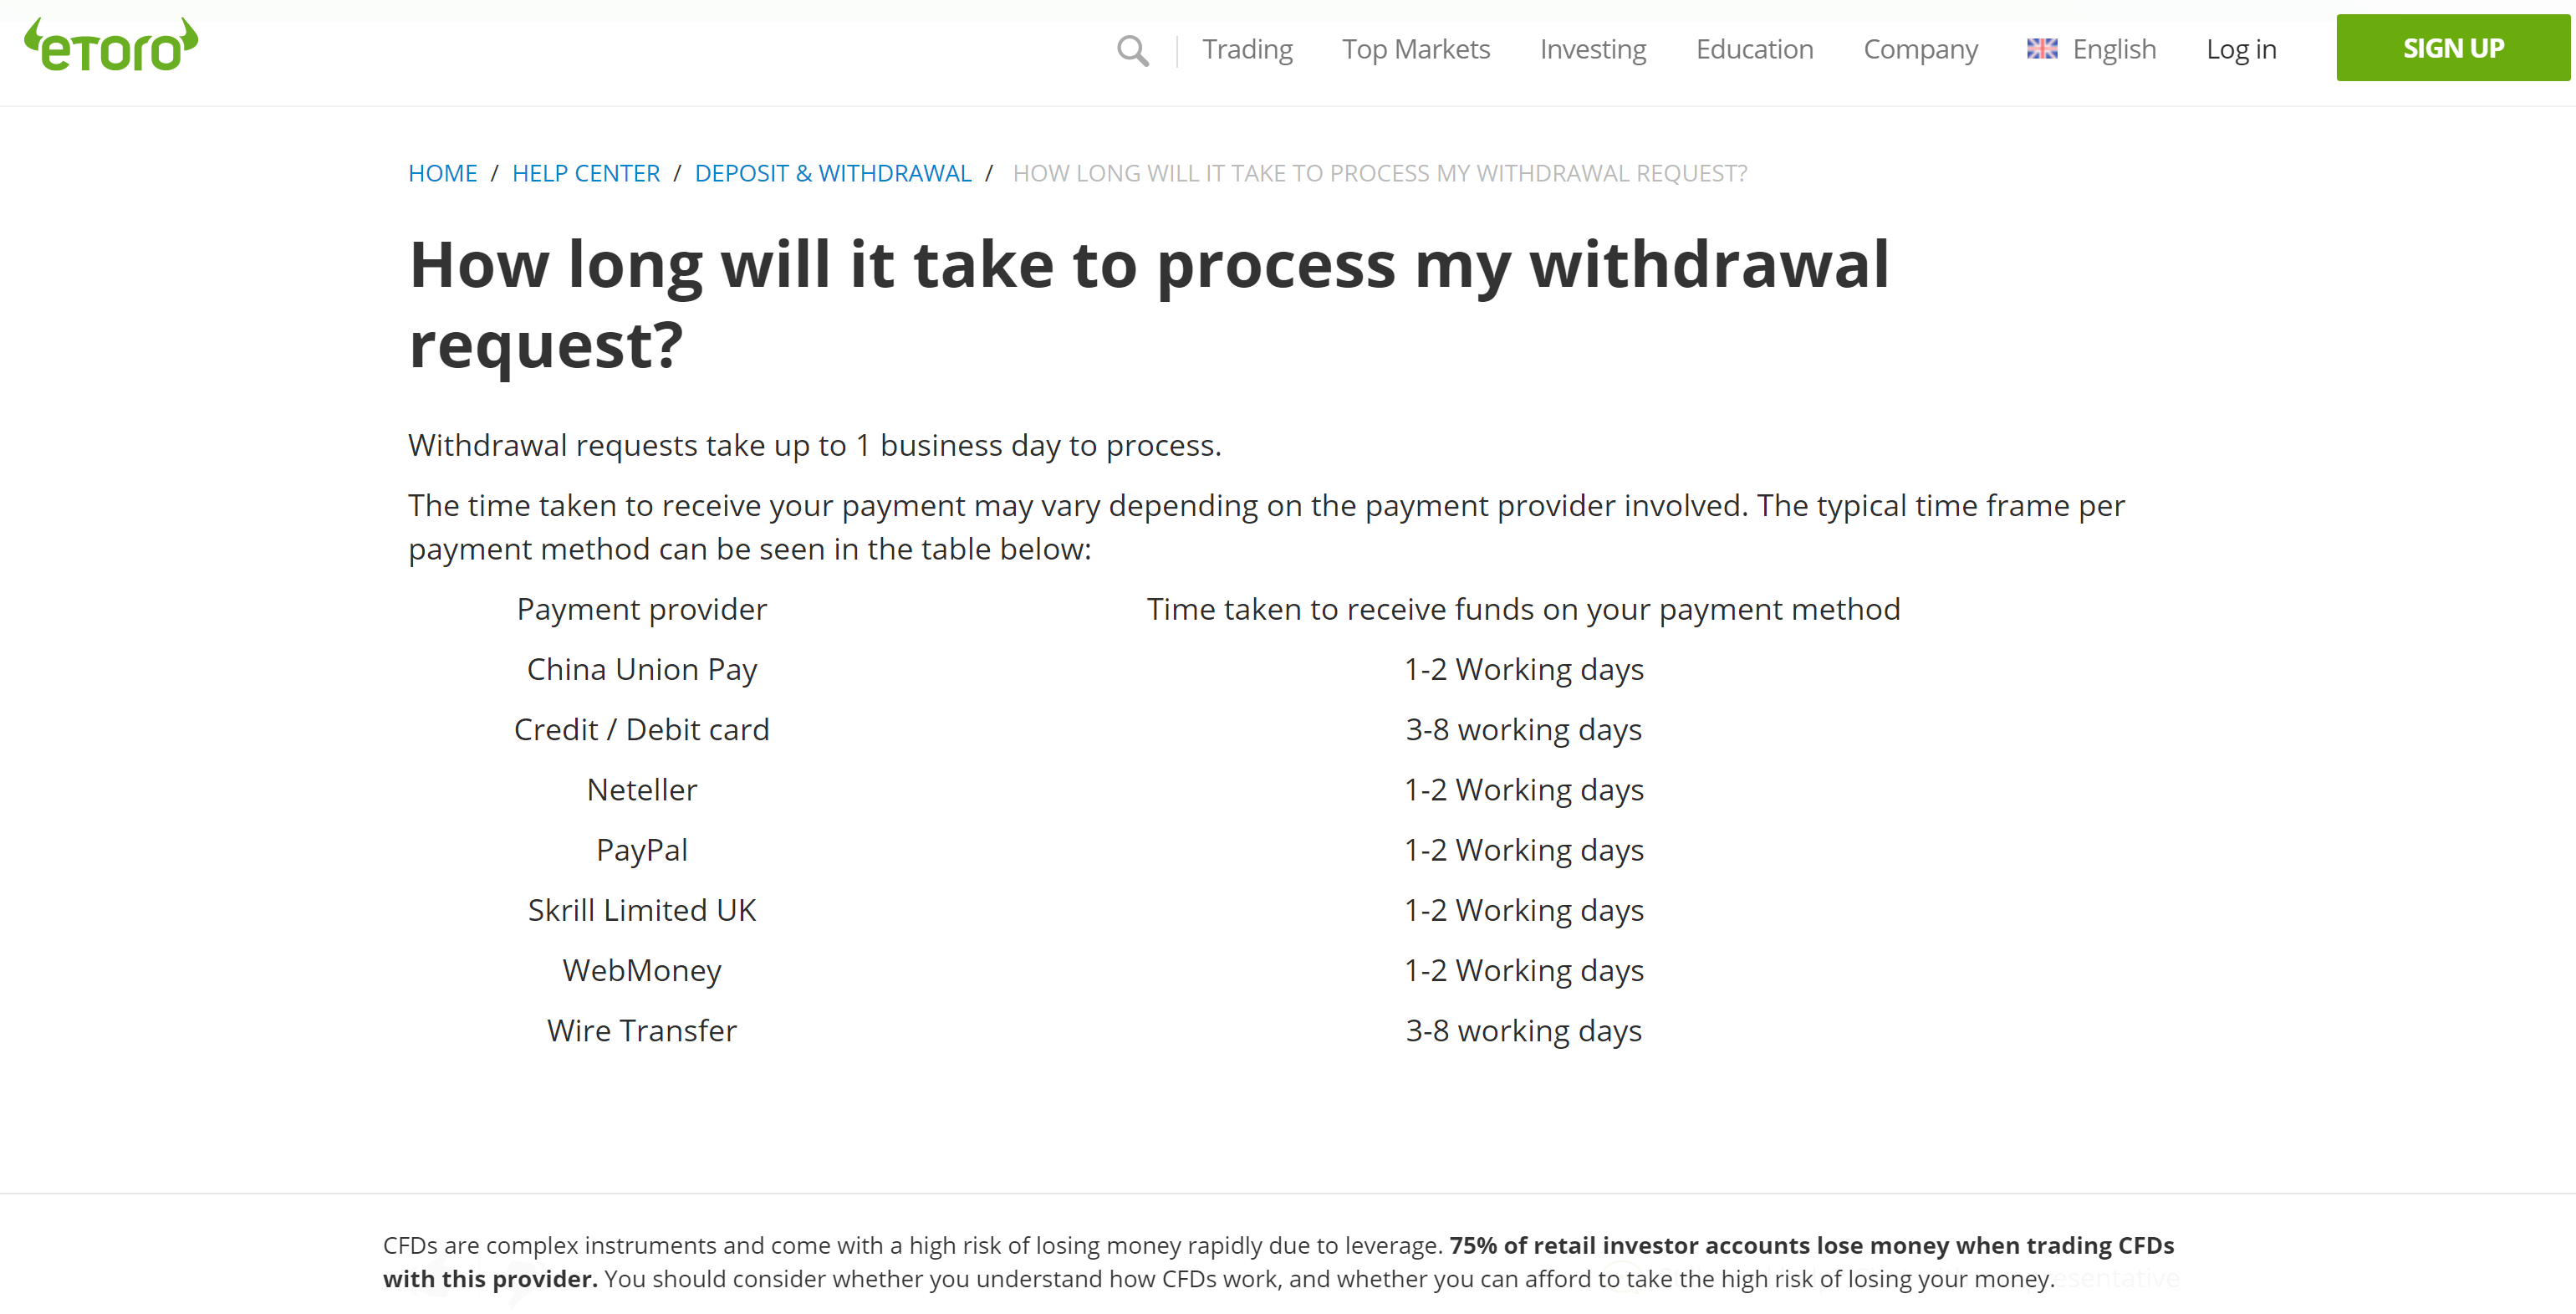 eToro review - Deposit and withdrawal - Withdrawal time